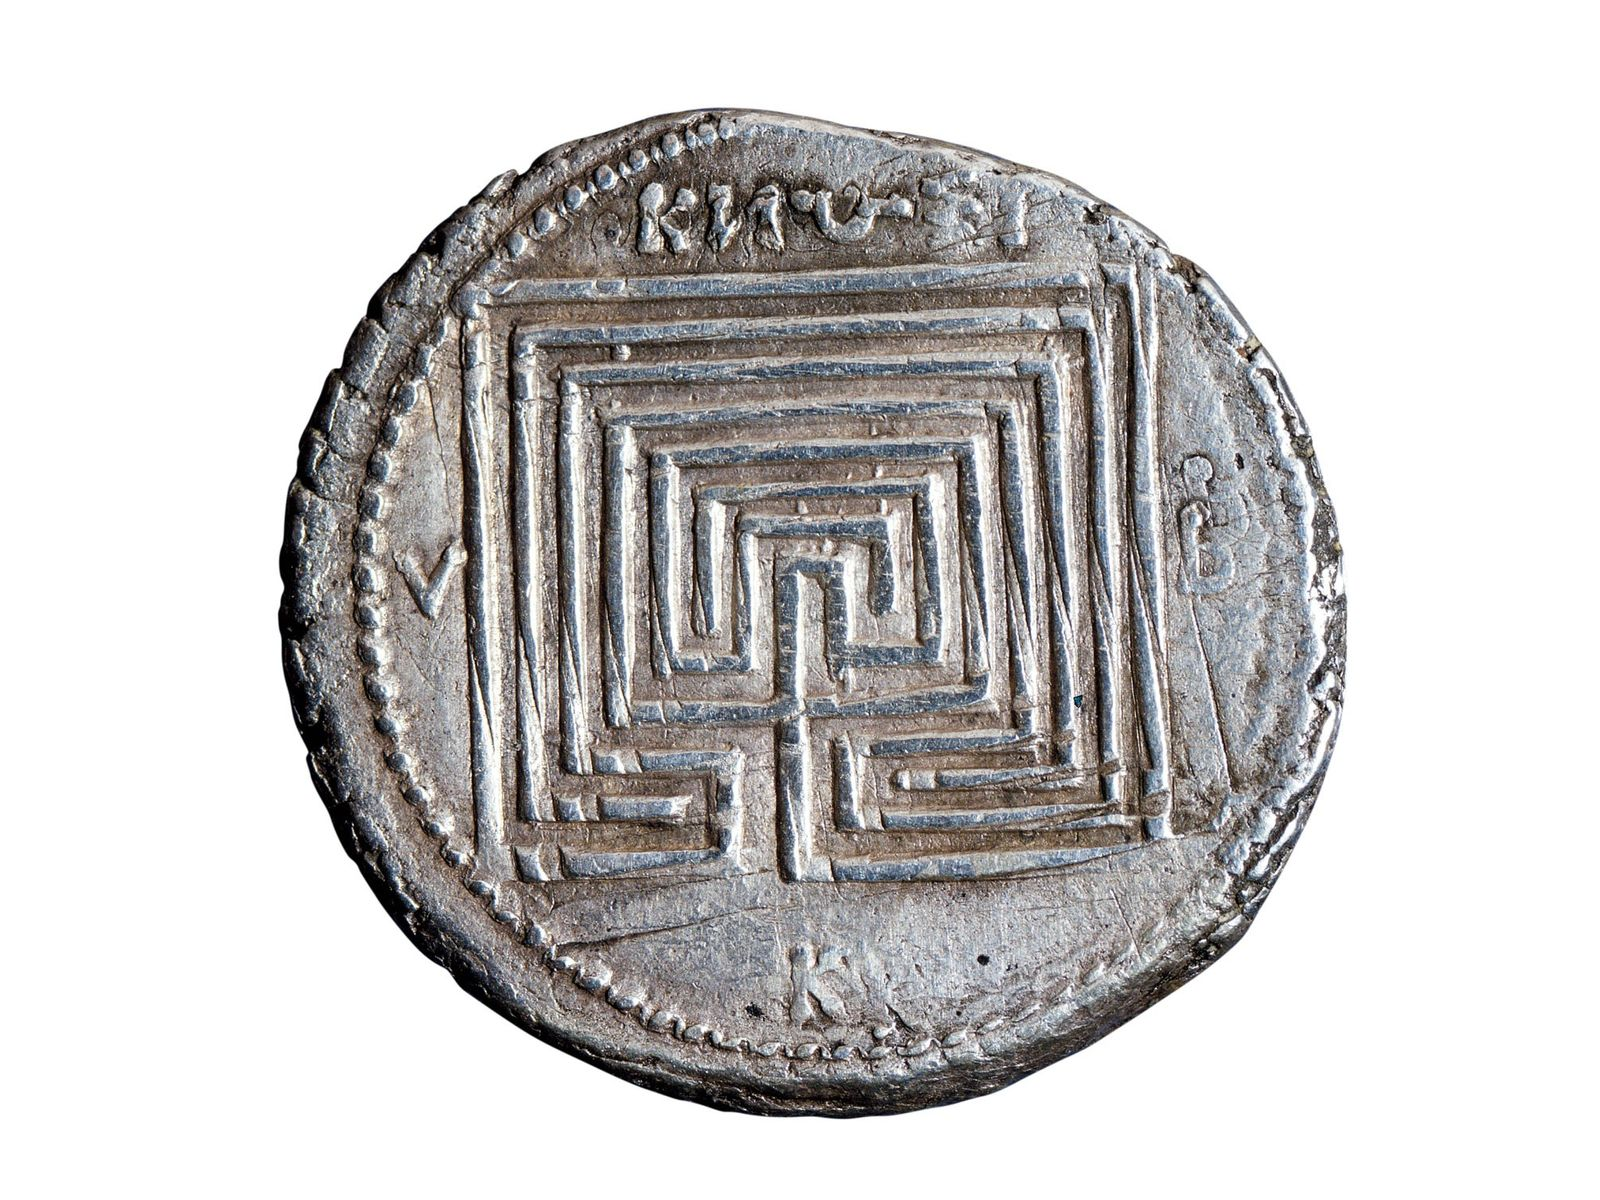 A fifth-century B.C. coin from Crete depicts the mythical Labyrinth. National Roman Museum, Rome